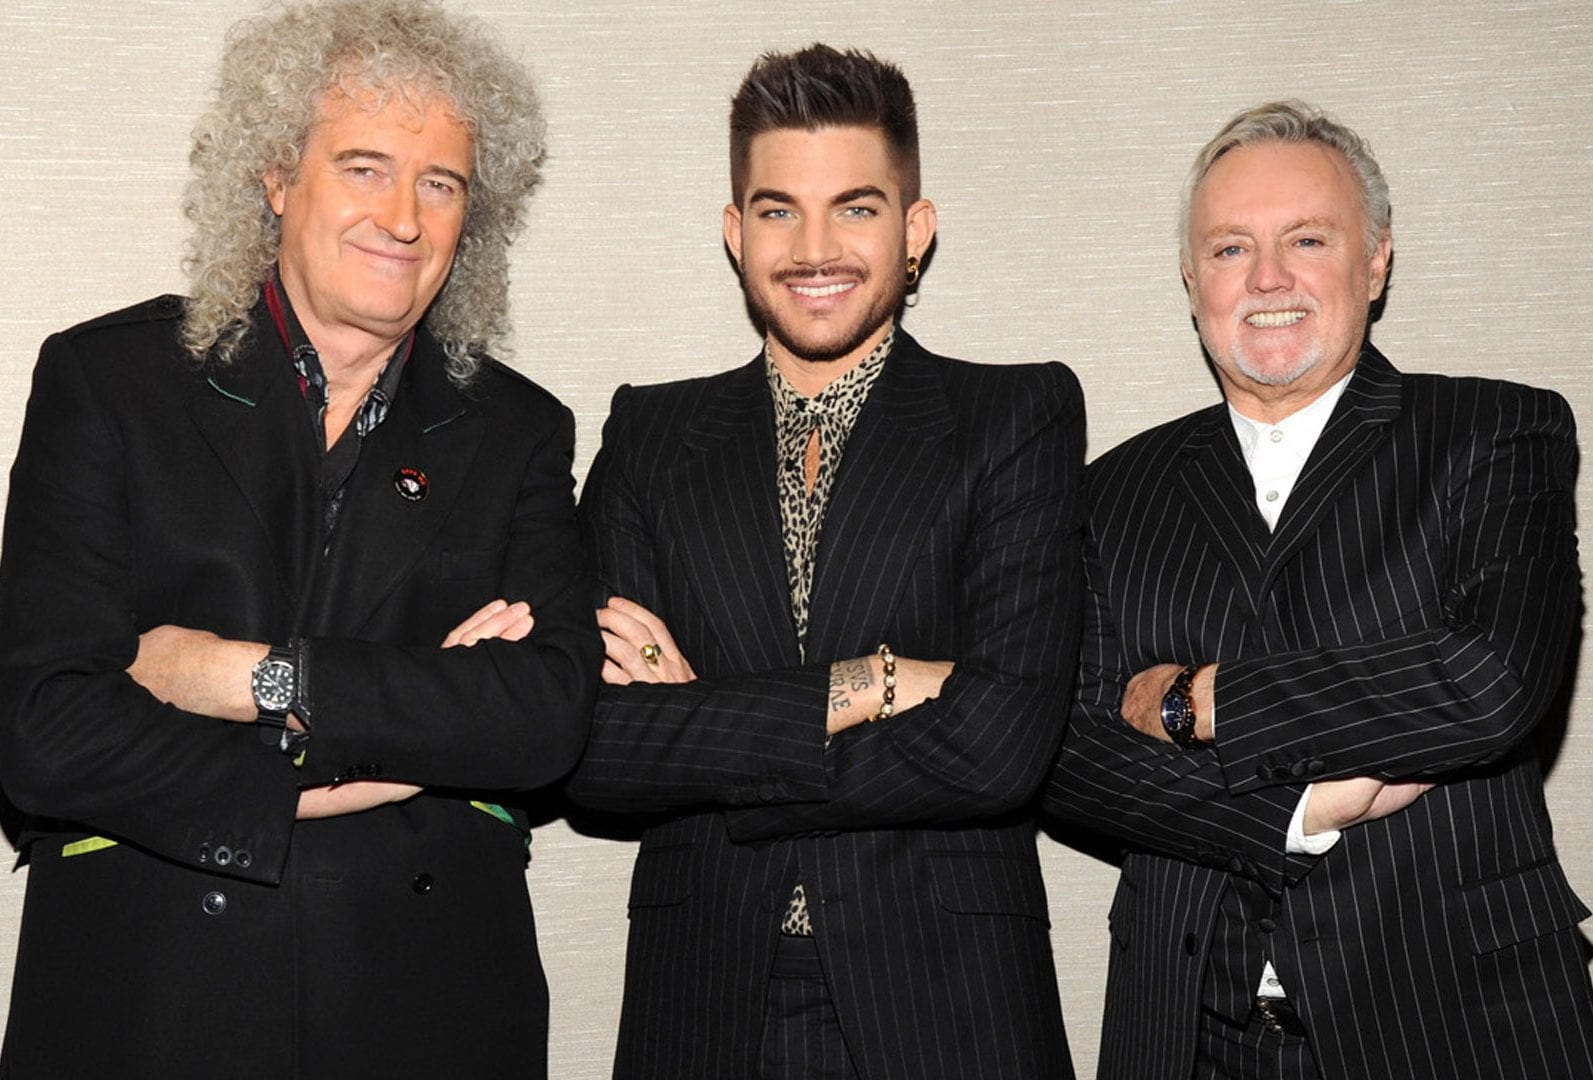 Queen and Adam Lambert in Concert at Rogers Arena Vancouver